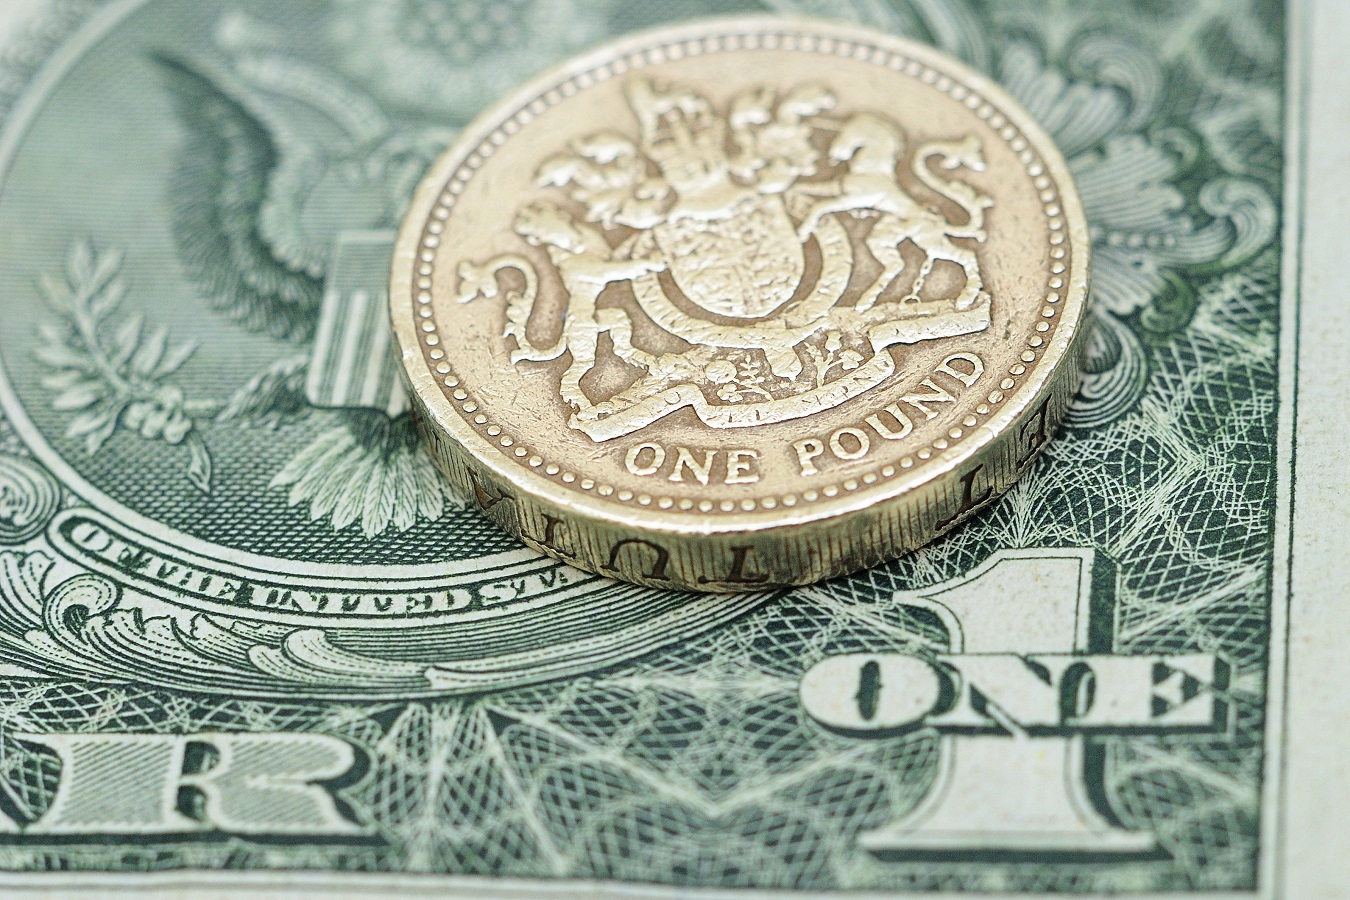 GBP holds value while the USD plumbs amid Fresh Brexit Vote